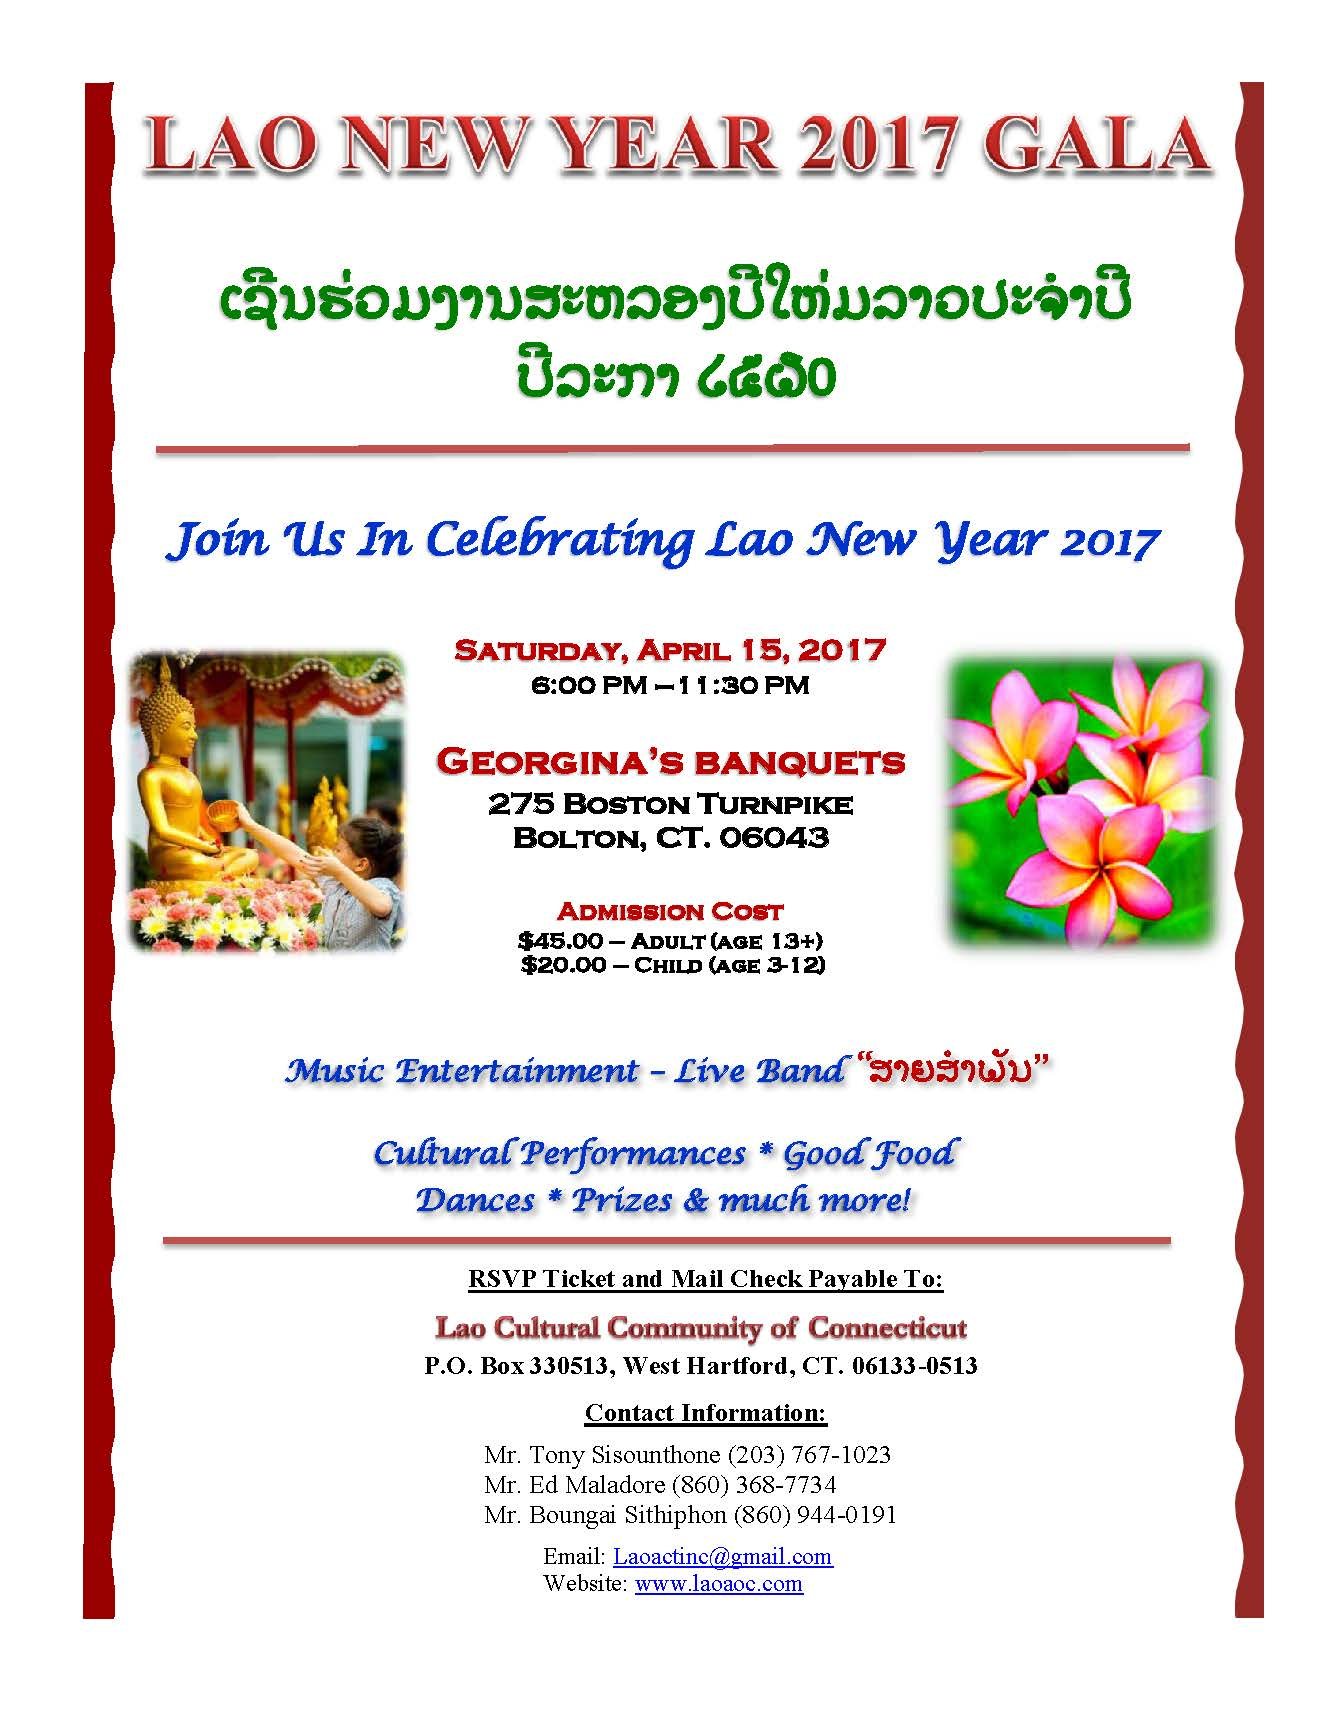 Lao Association of Connecticut CT, INC.